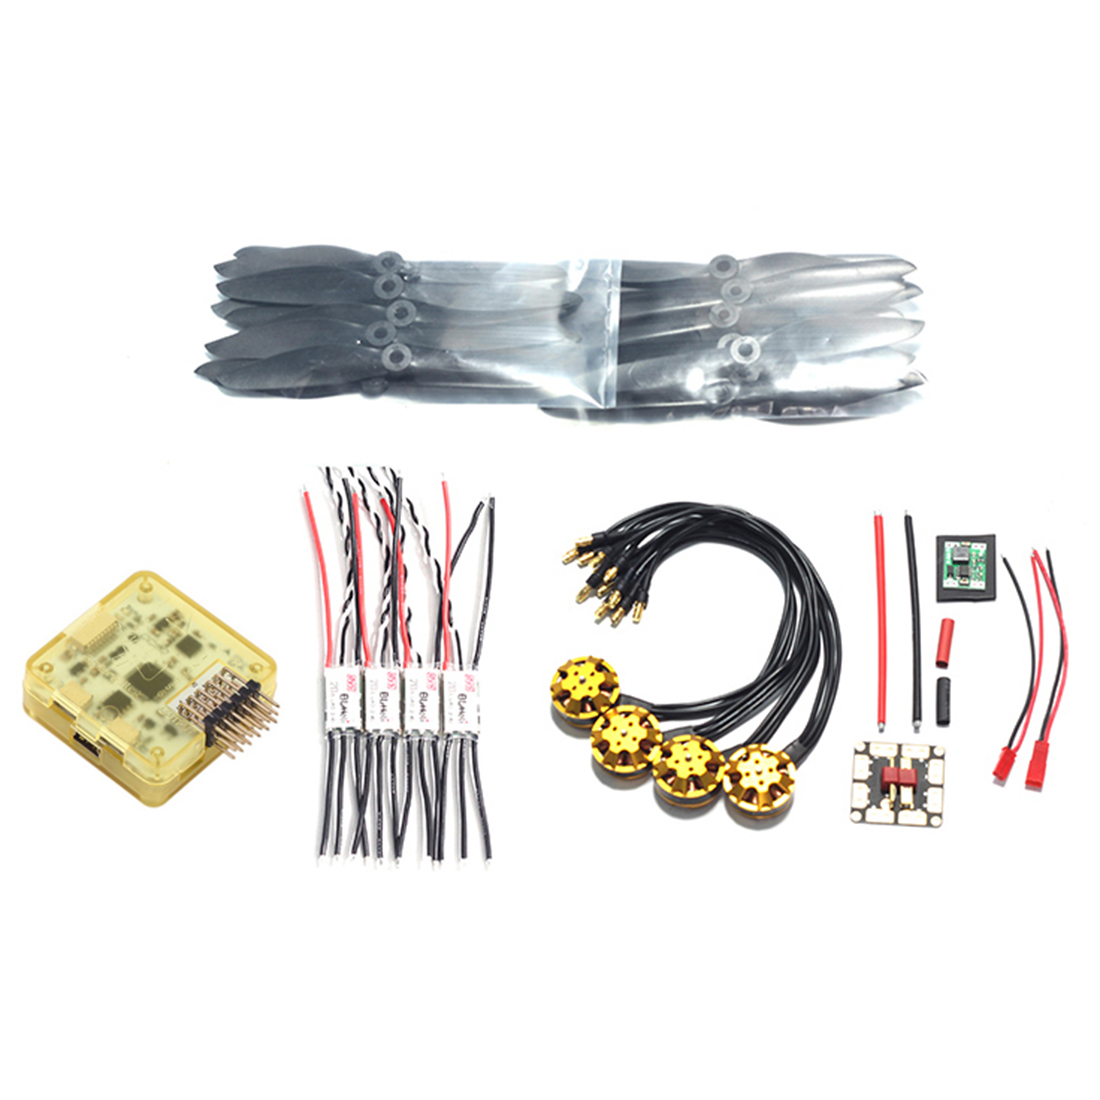 small resolution of cc3d flight controller 2204 2400kv motor 6040 propeller blhli 20a esc 5v step down module 35 35 lay plate 14awg silicon cable in drone accessories kits